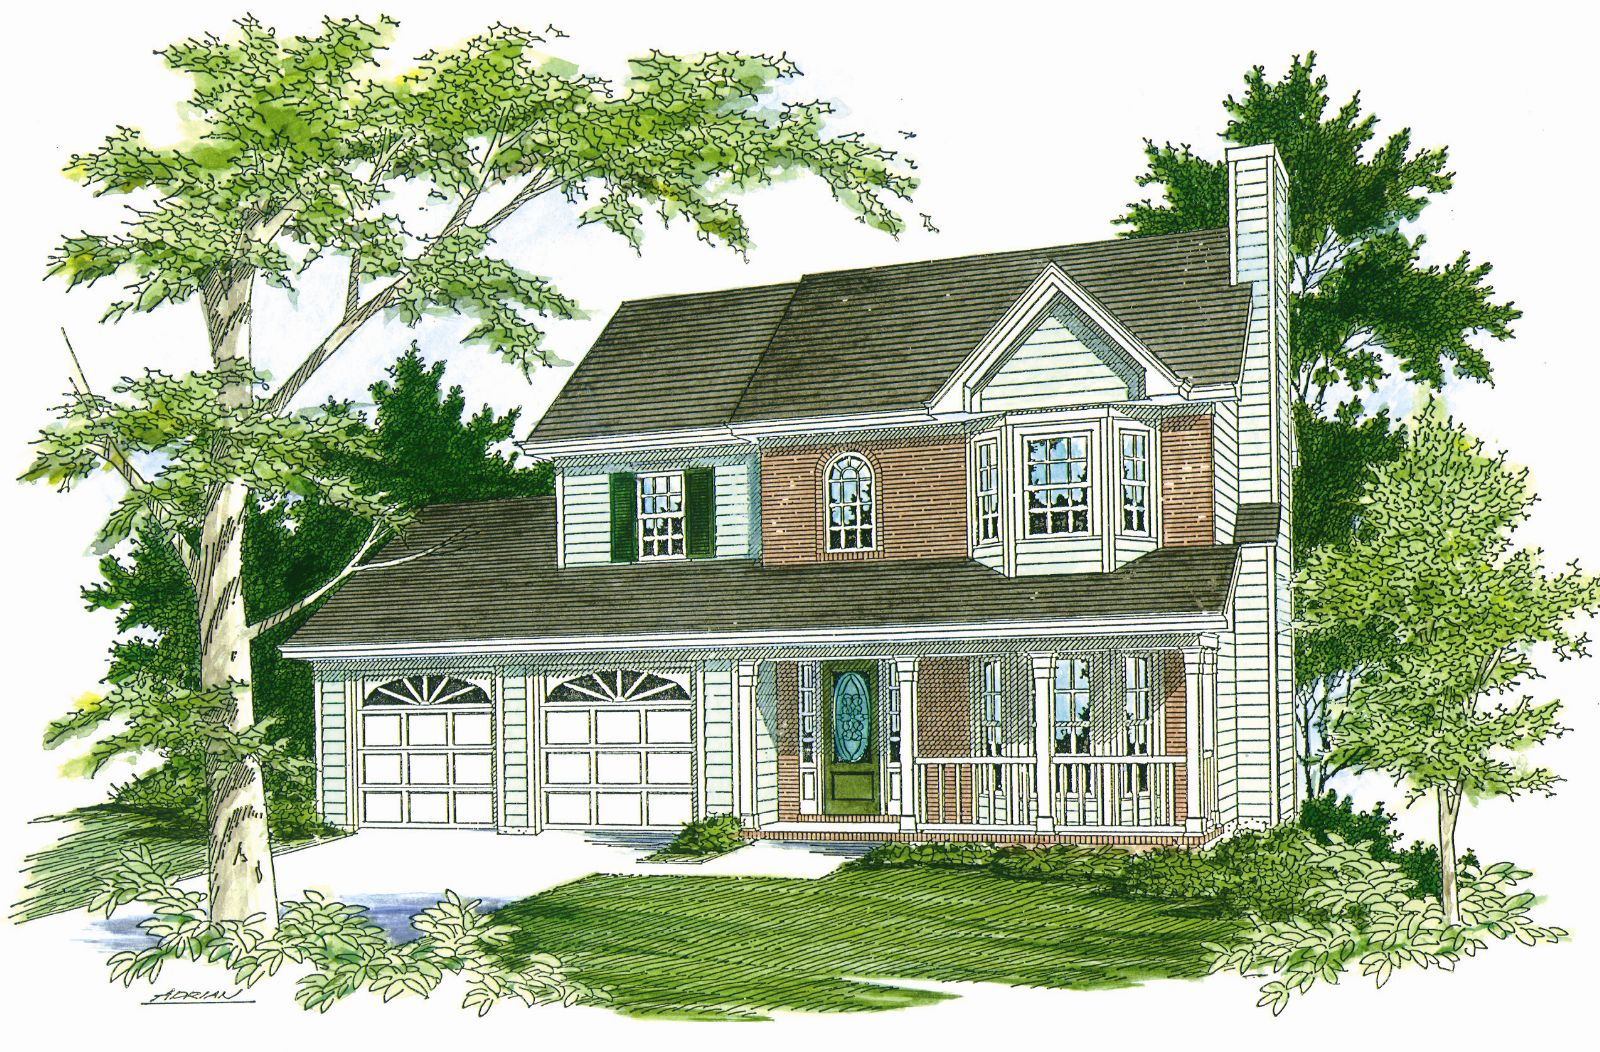 House plans with cost estimates to build house plan cost for Home building price calculator